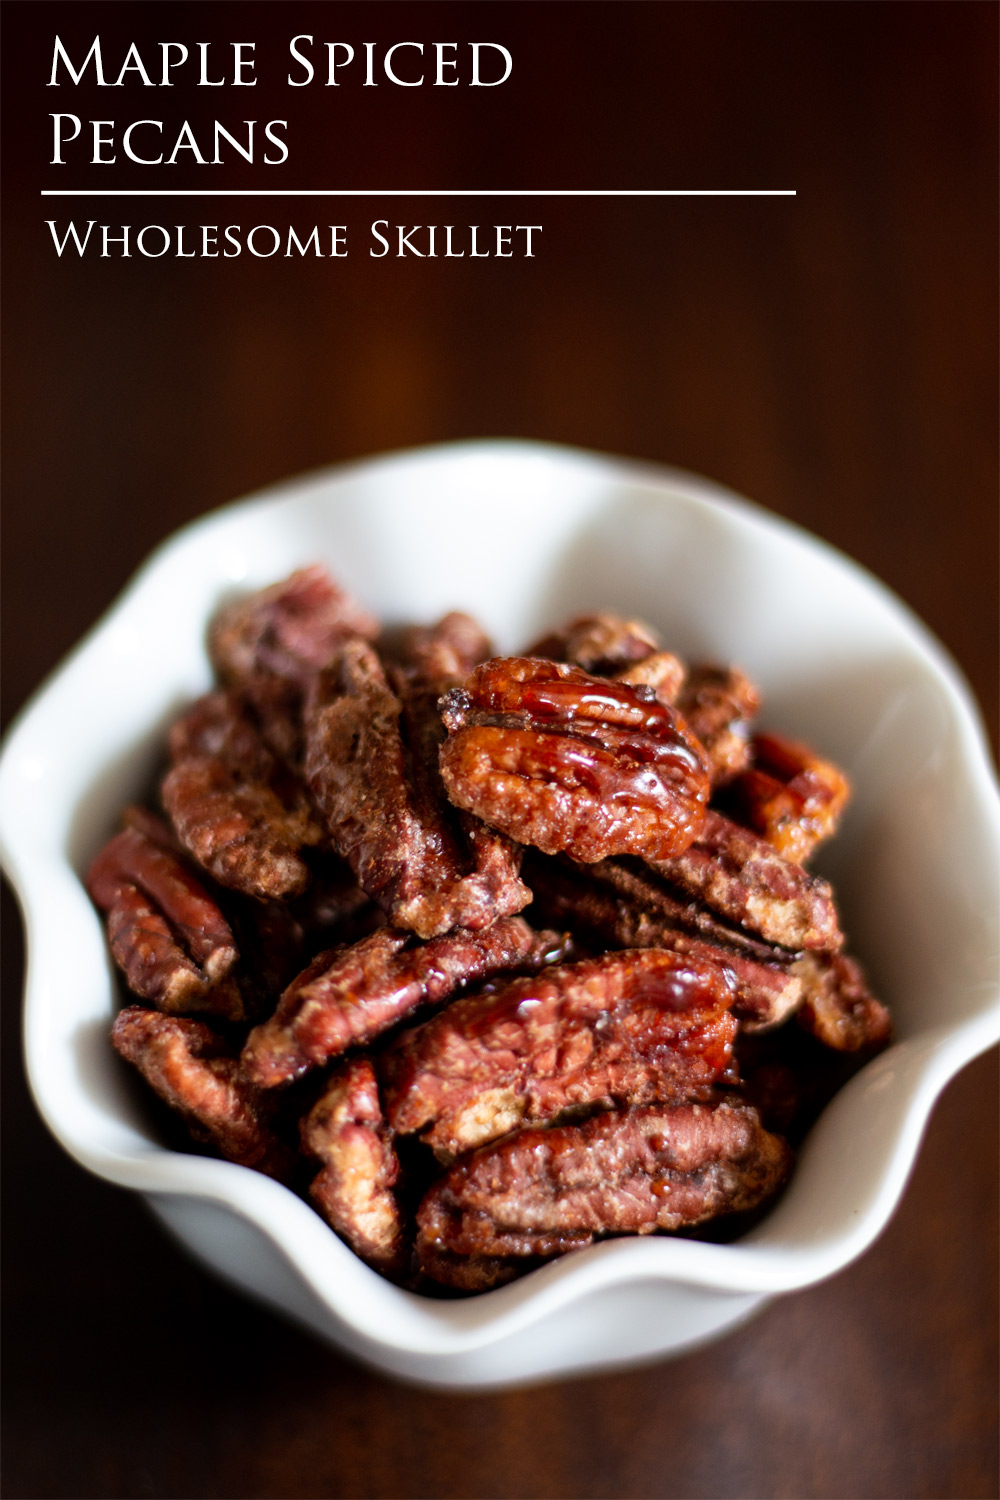 Maple Spiced Pecans - Toasted pecans with a light glaze of spiced maple syrup are a great snack you will love.